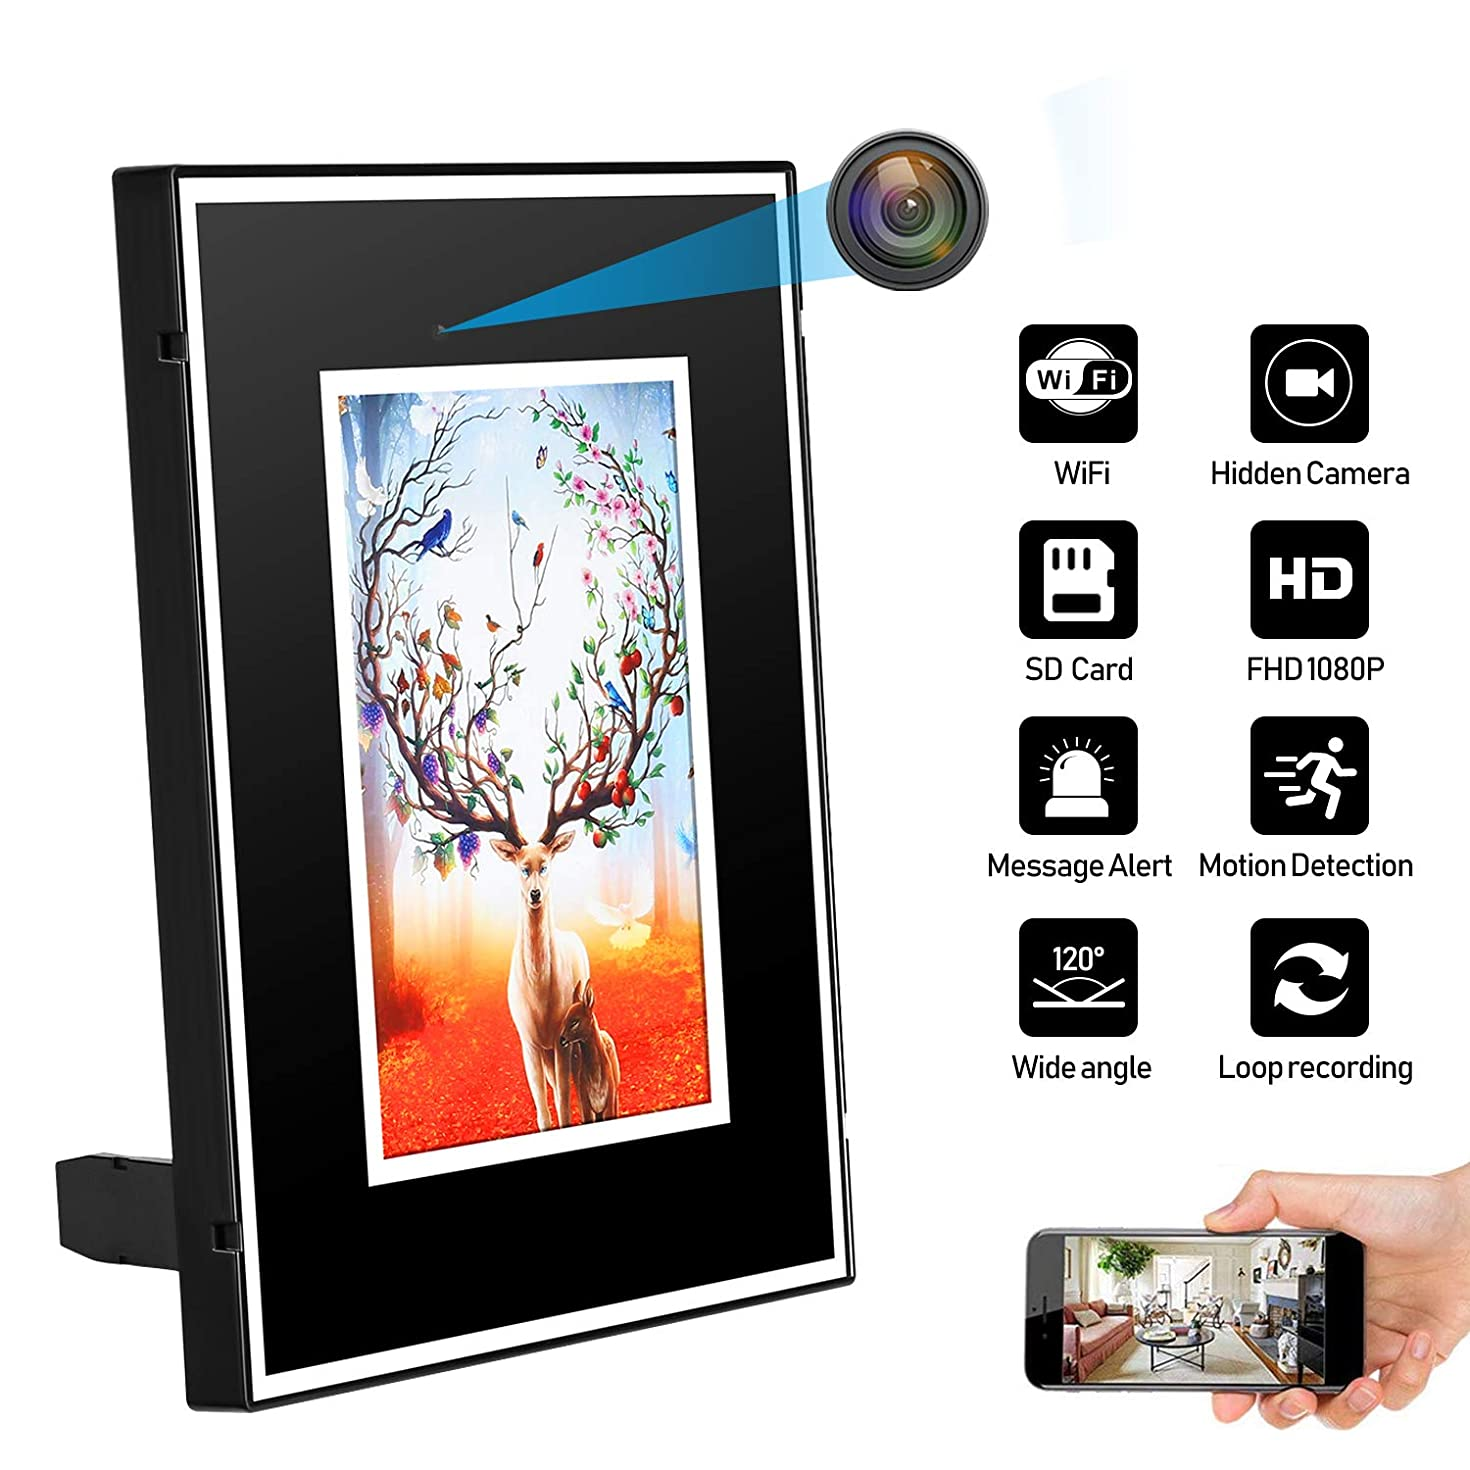 JLRKENG Hidden Spy Camera WiFi Photo Frame Home Security Camera Motion Detection Loop Recording Wireless Nanny Cam with Rechargeable Battery